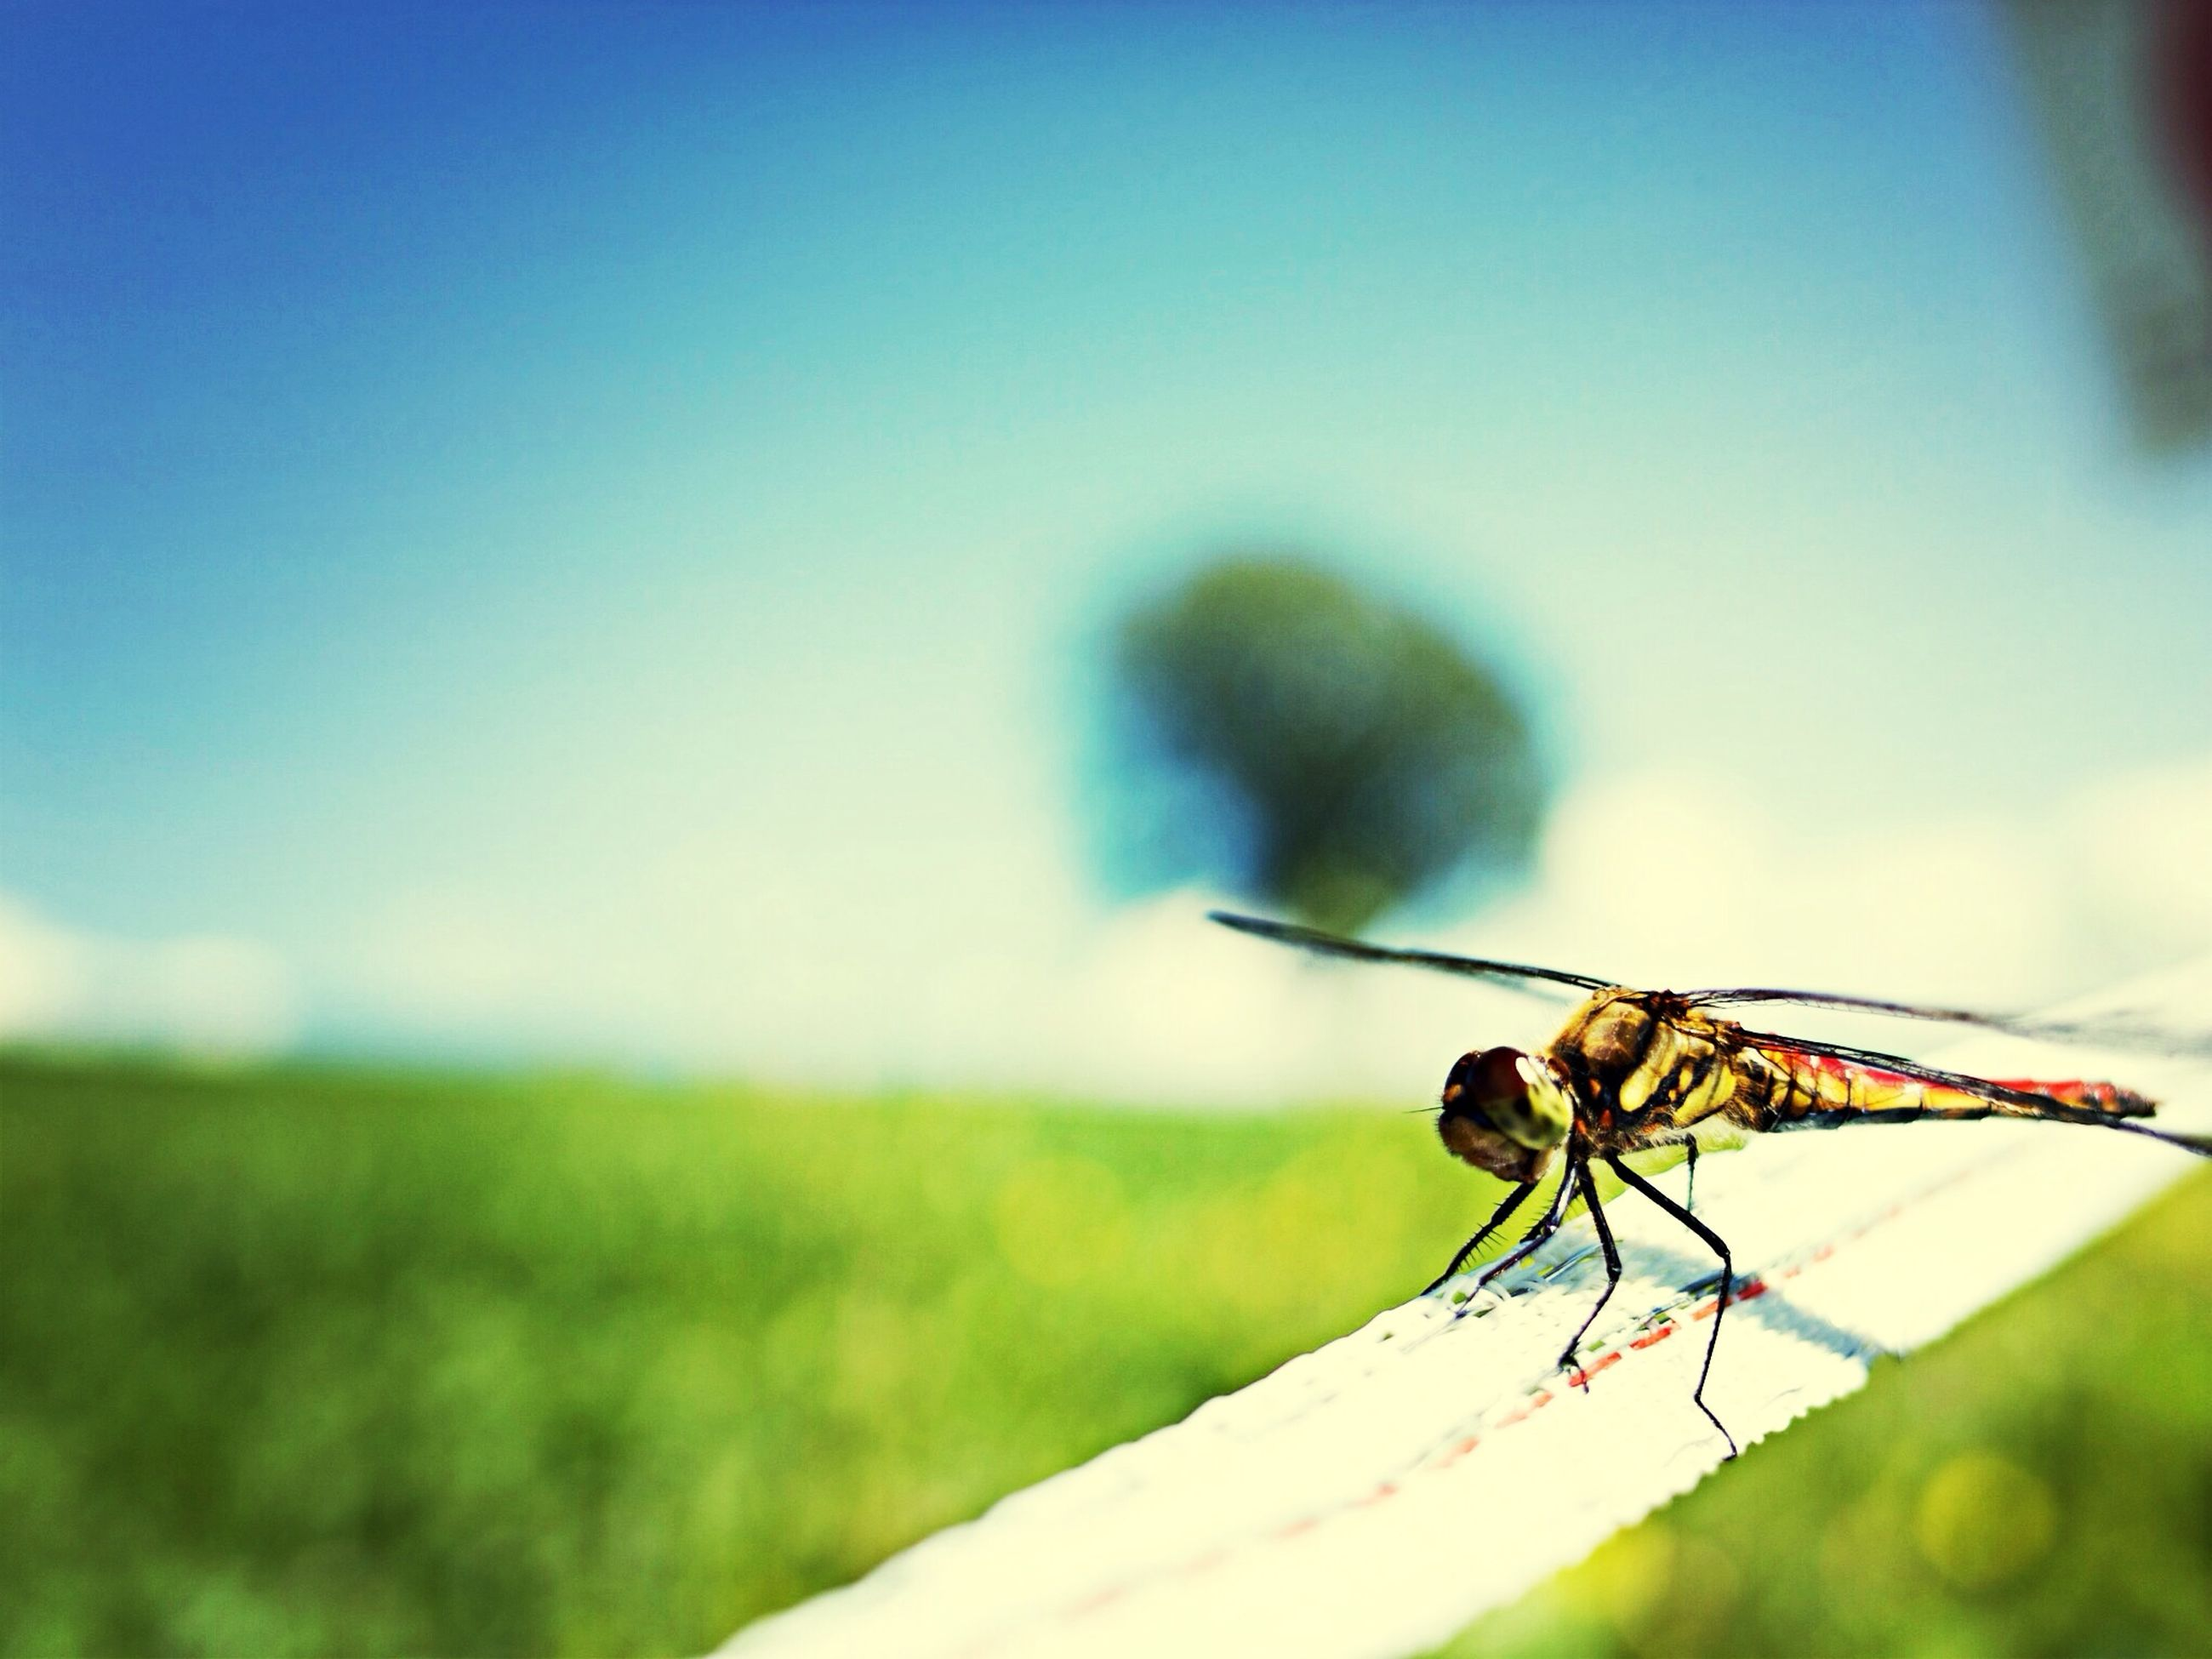 animal themes, insect, one animal, animals in the wild, wildlife, focus on foreground, close-up, dragonfly, selective focus, zoology, full length, animal wing, nature, two animals, day, outdoors, spider, animal antenna, no people, perching